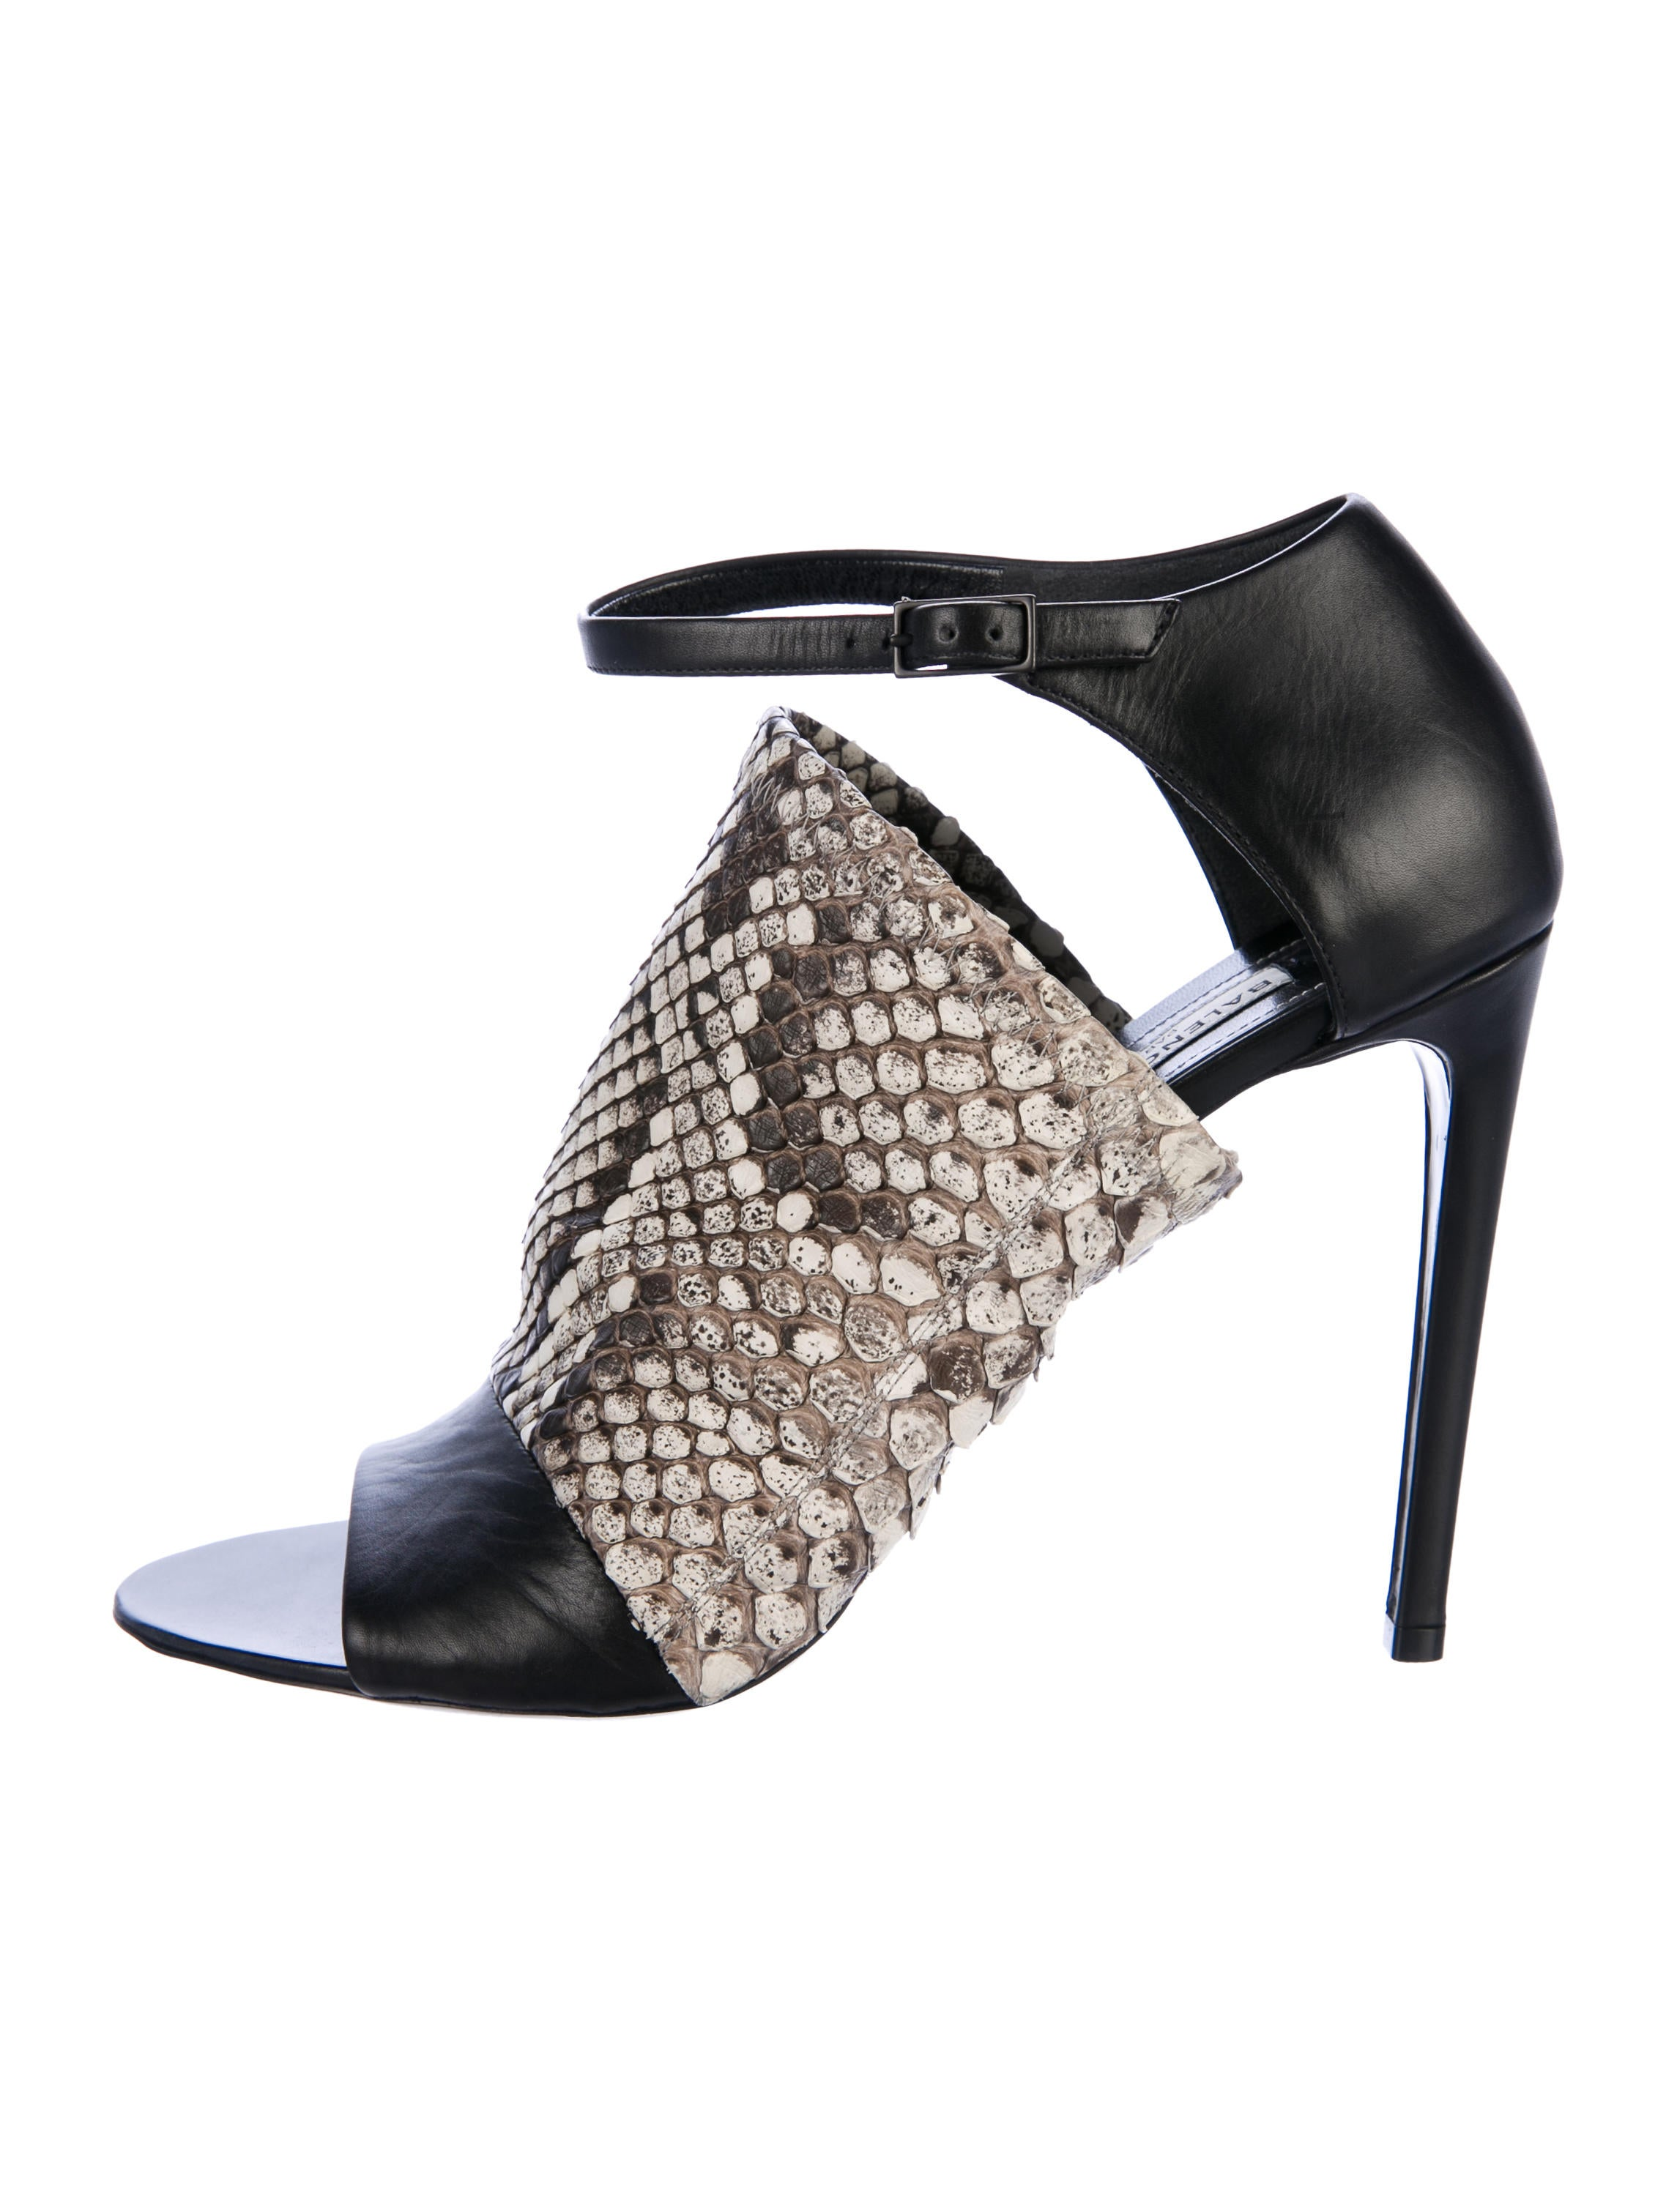 cheap reliable from china free shipping Balenciaga Snakeskin-Trimmed Glove Sandals cheap sale low shipping cheap price top quality LPG1Dbr